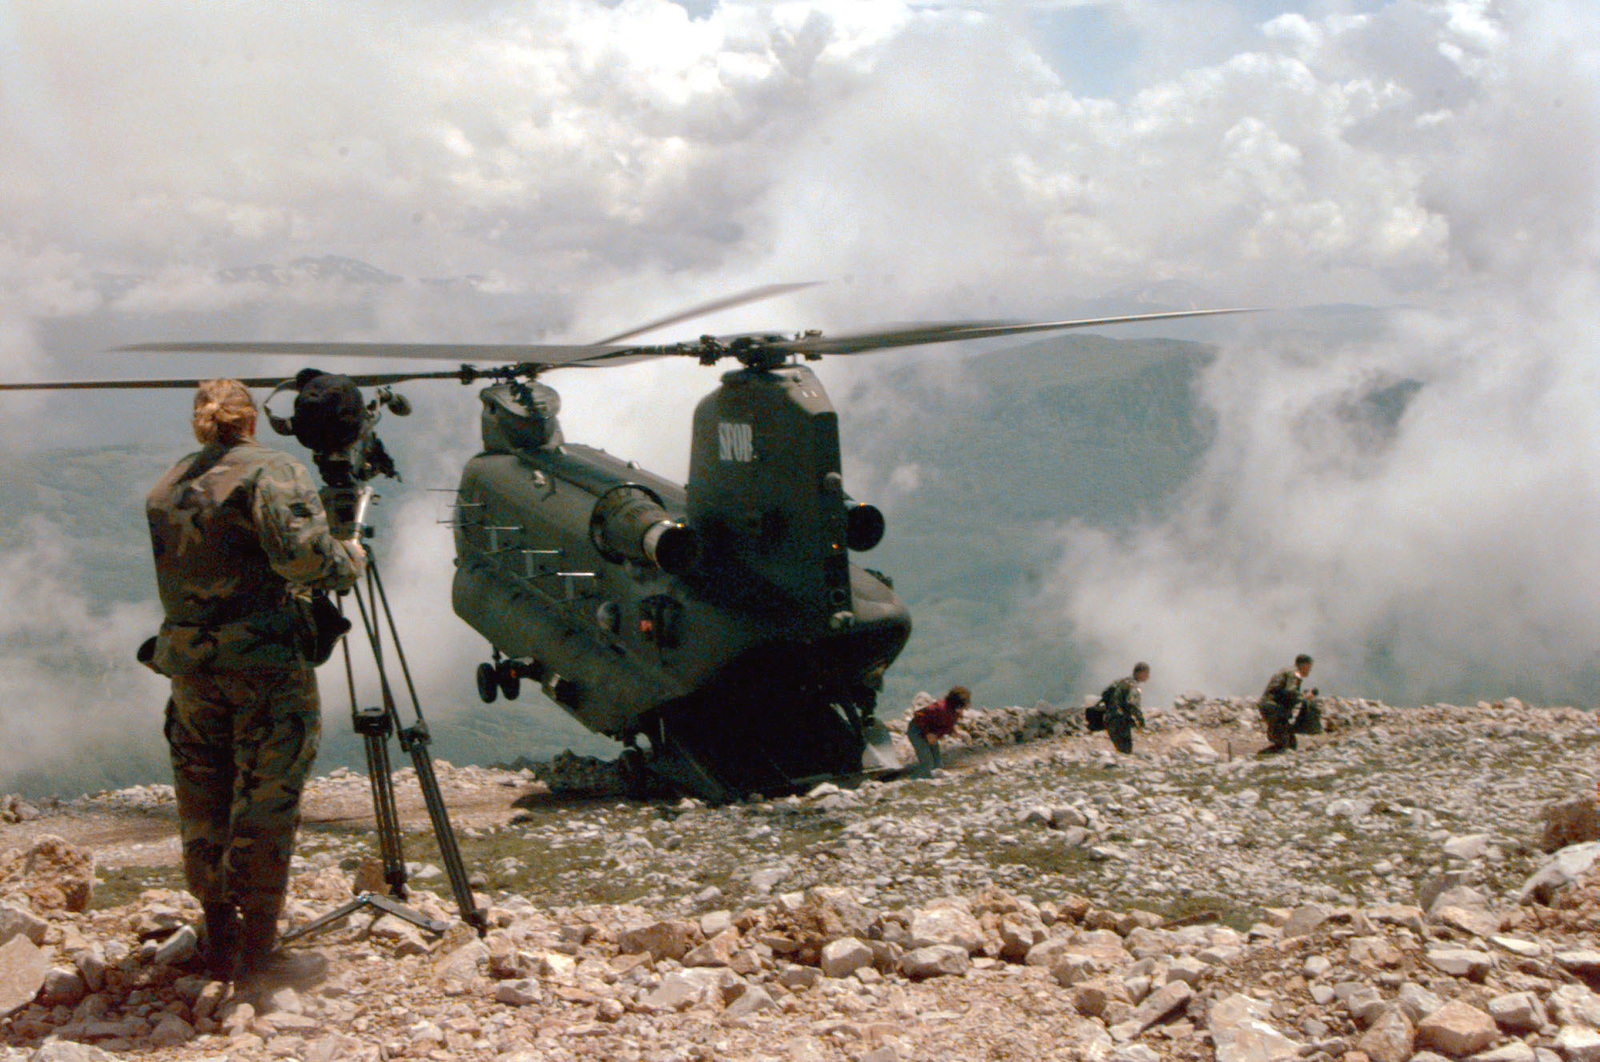 SRA Heather Odom, videographer from the 1ST Combat Camera Squadron, Charleston Air Force Base, South Carolina using her Sony VX-1000 camera documents, through the rotor wash, the landing of a British CH-47 helicopter on the top of Mt. Lisin